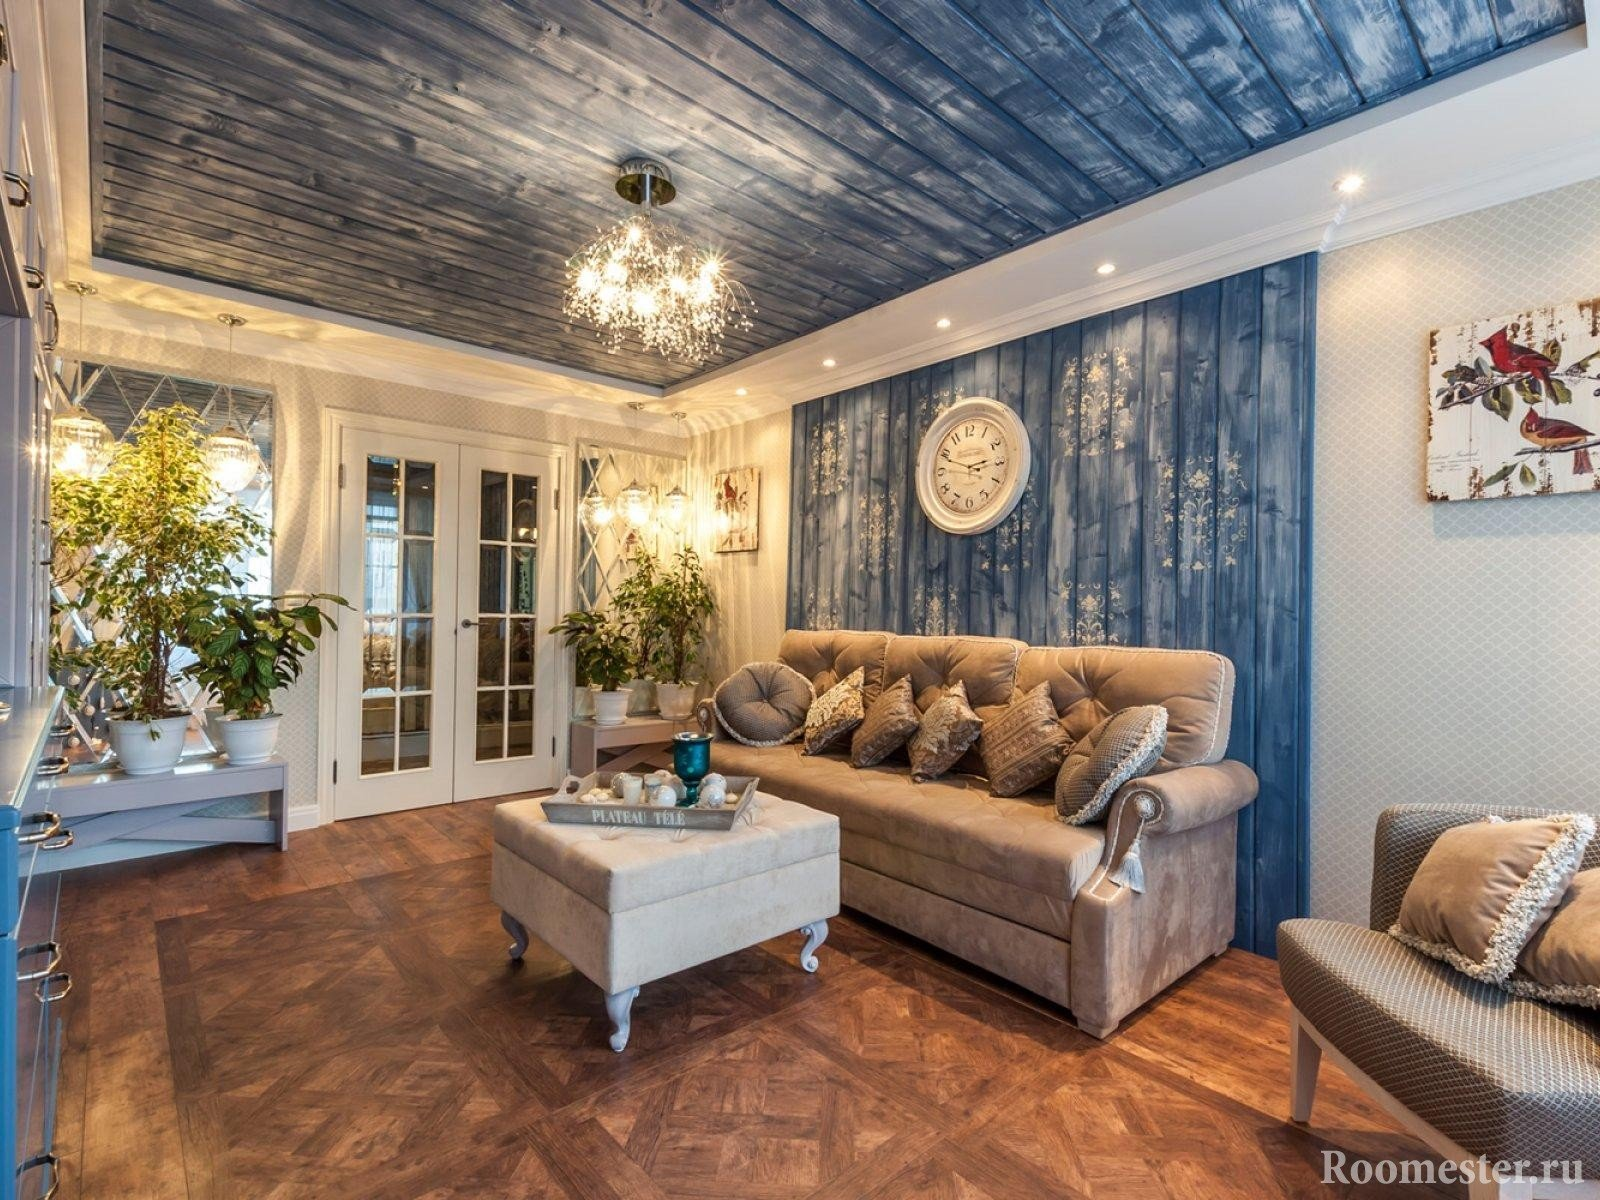 Wall and ceiling decoration in the living room clapboard